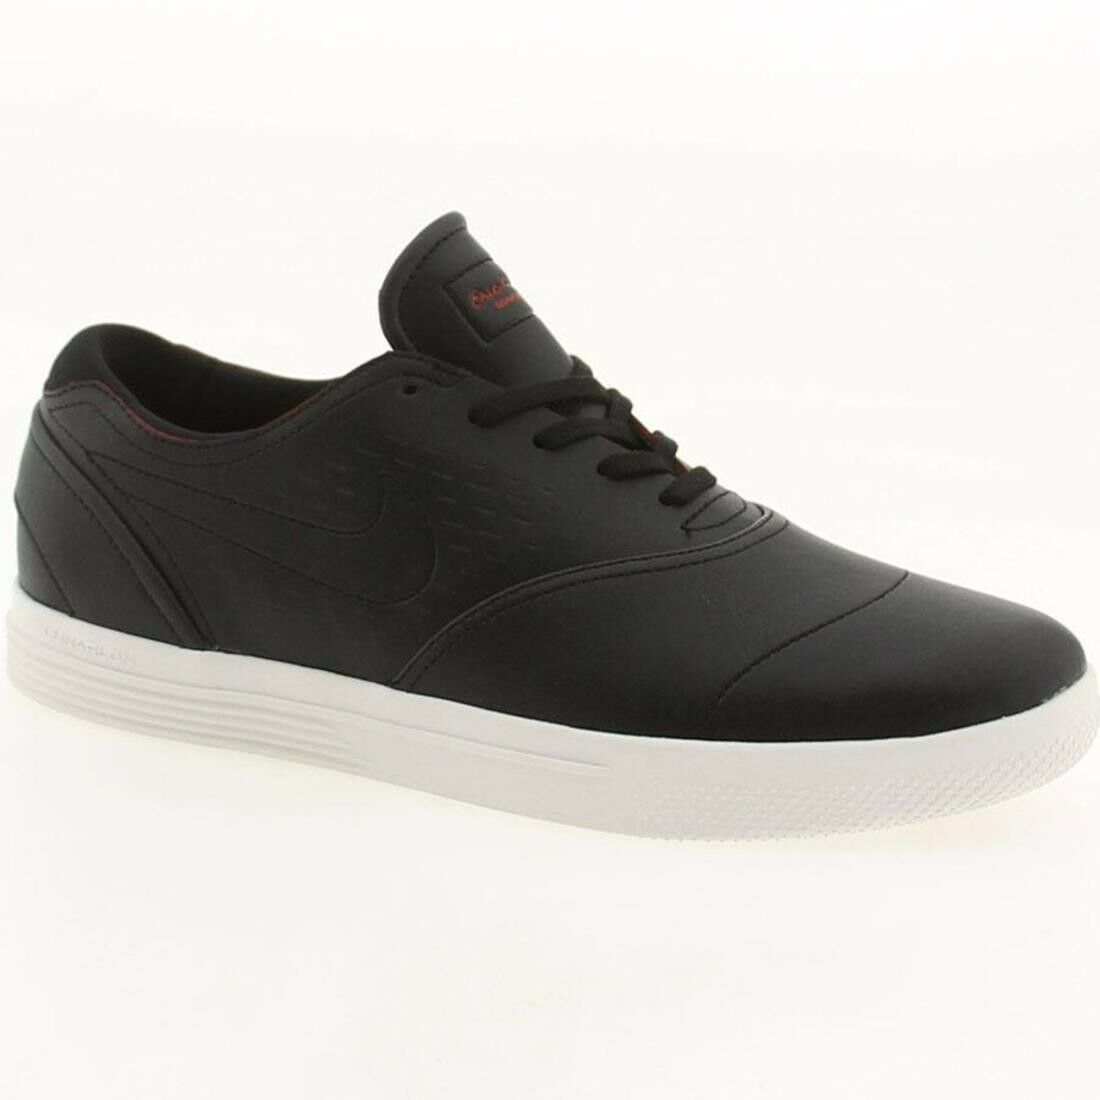 Seasonal clearance sale 598637-006 Nike Men Eric Koston 2 IT black / challenge red